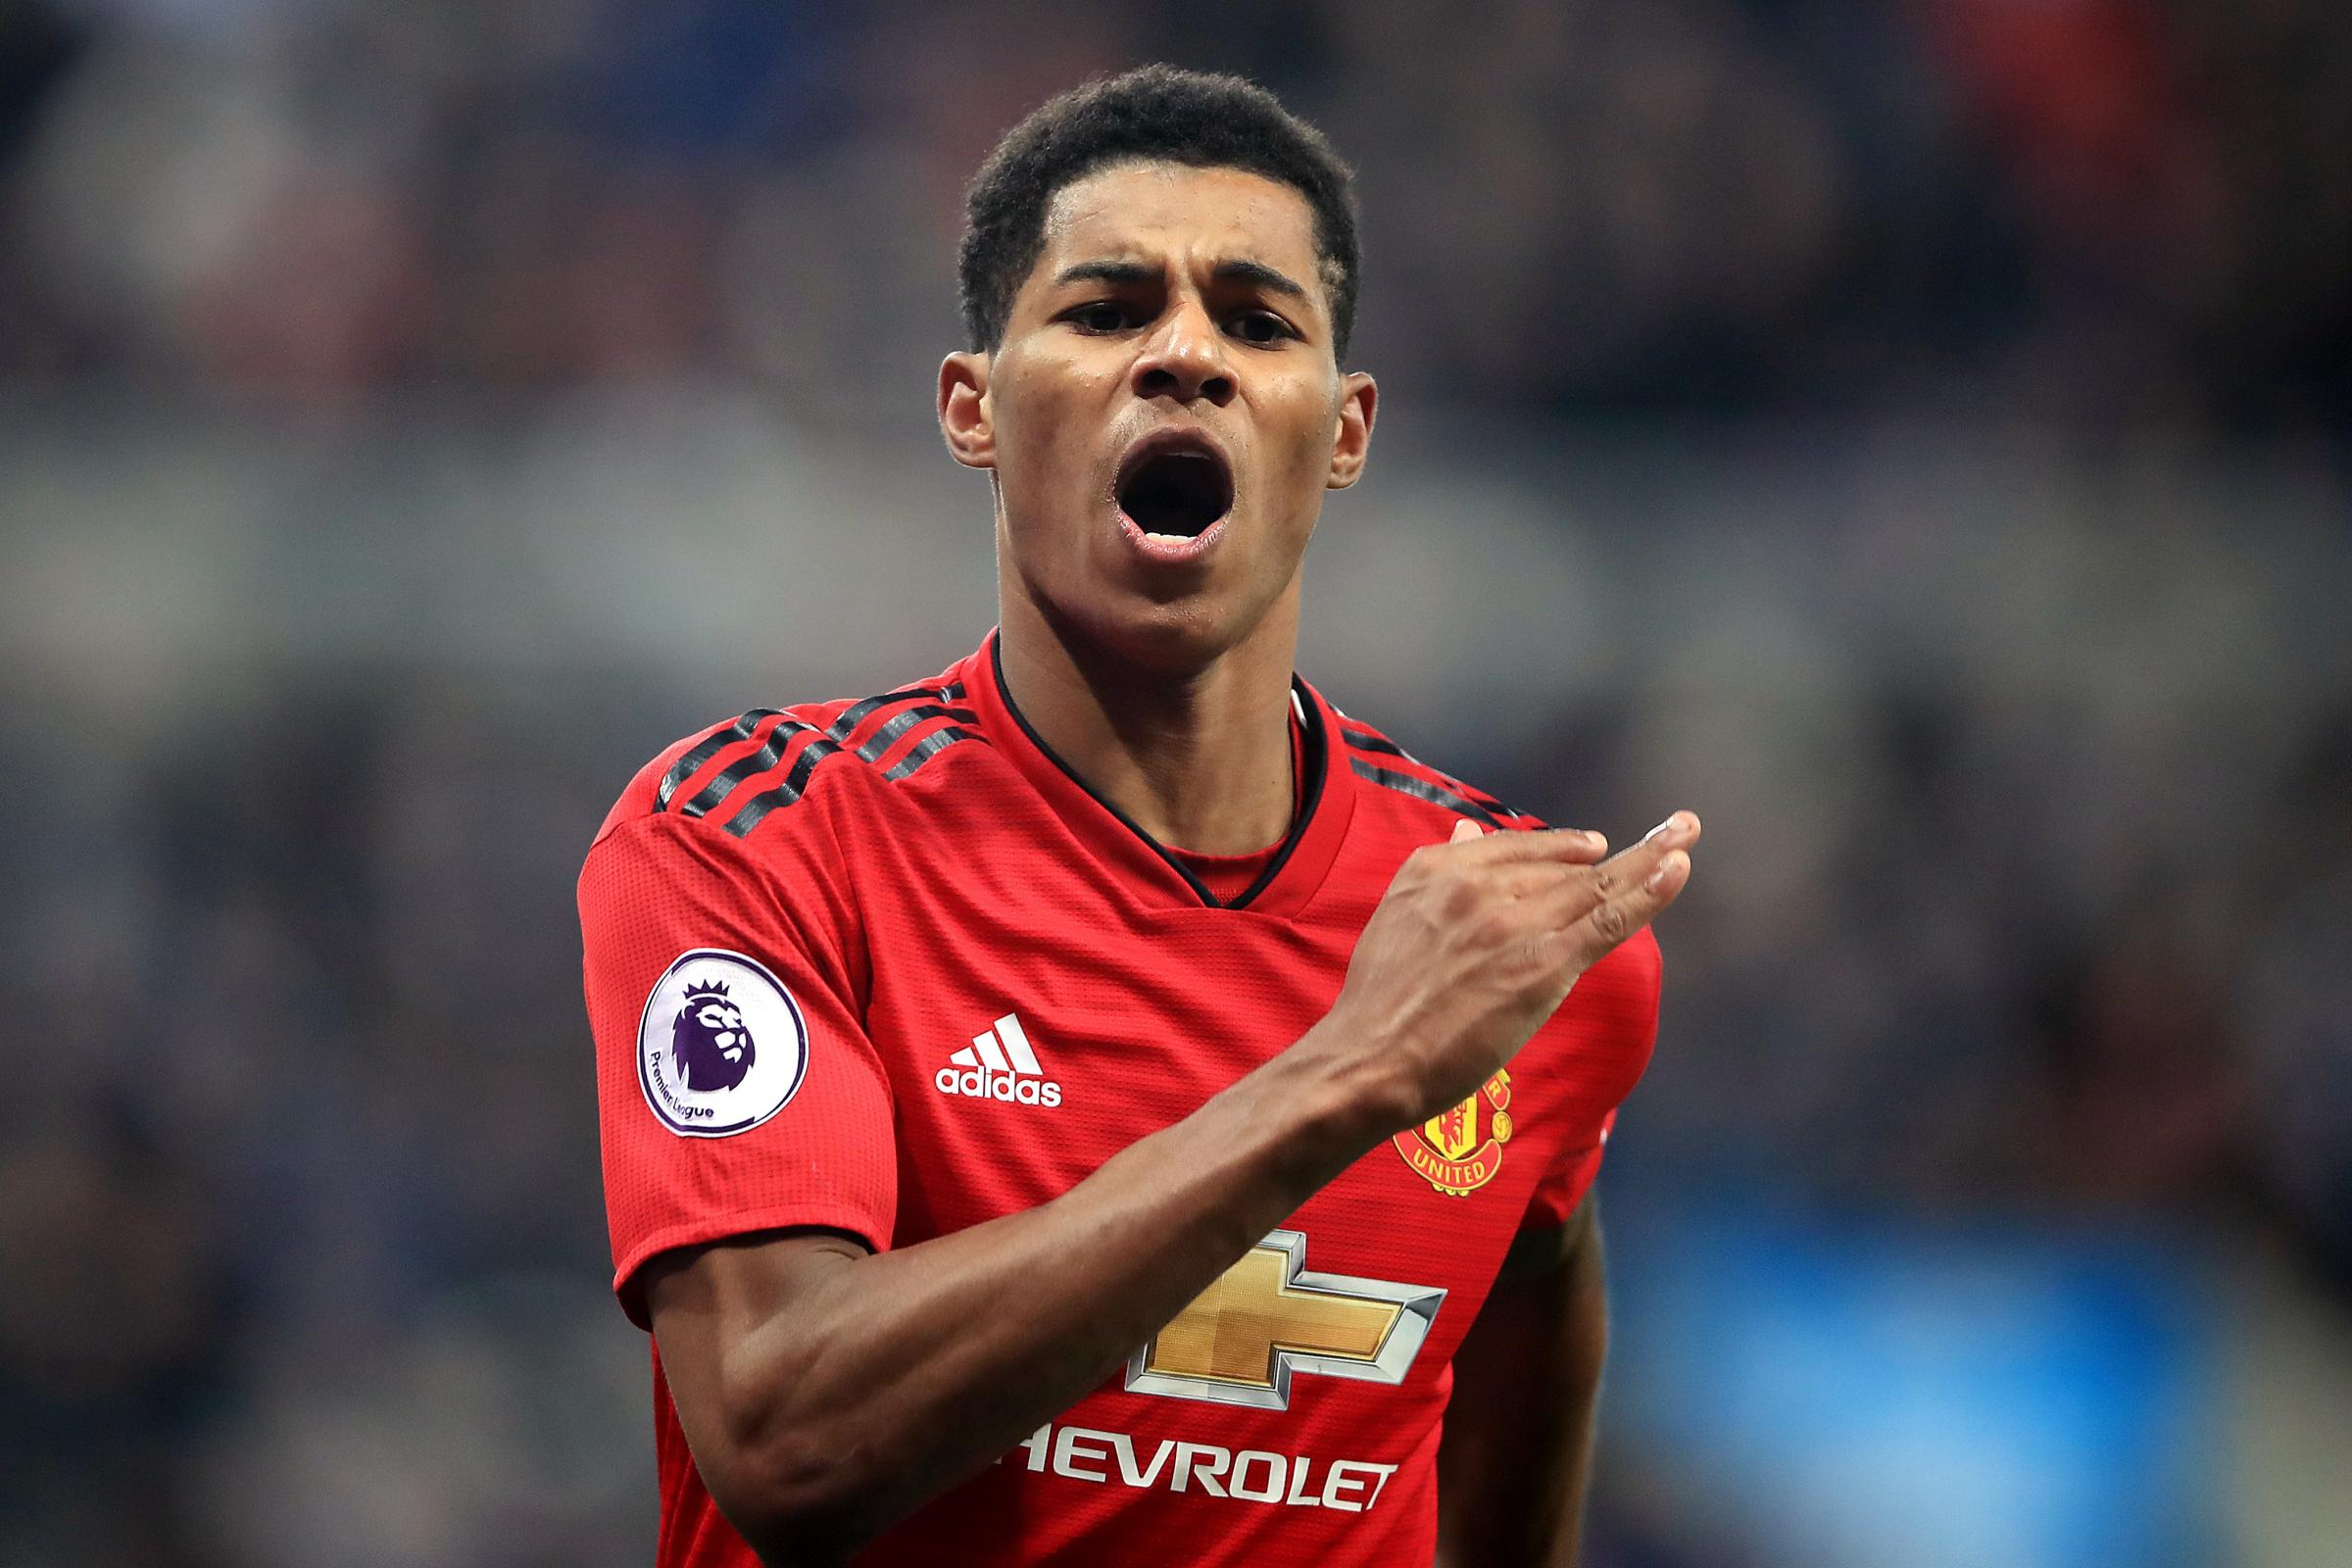 Marcus Rashford, pictured, has scored three times in his last four starts